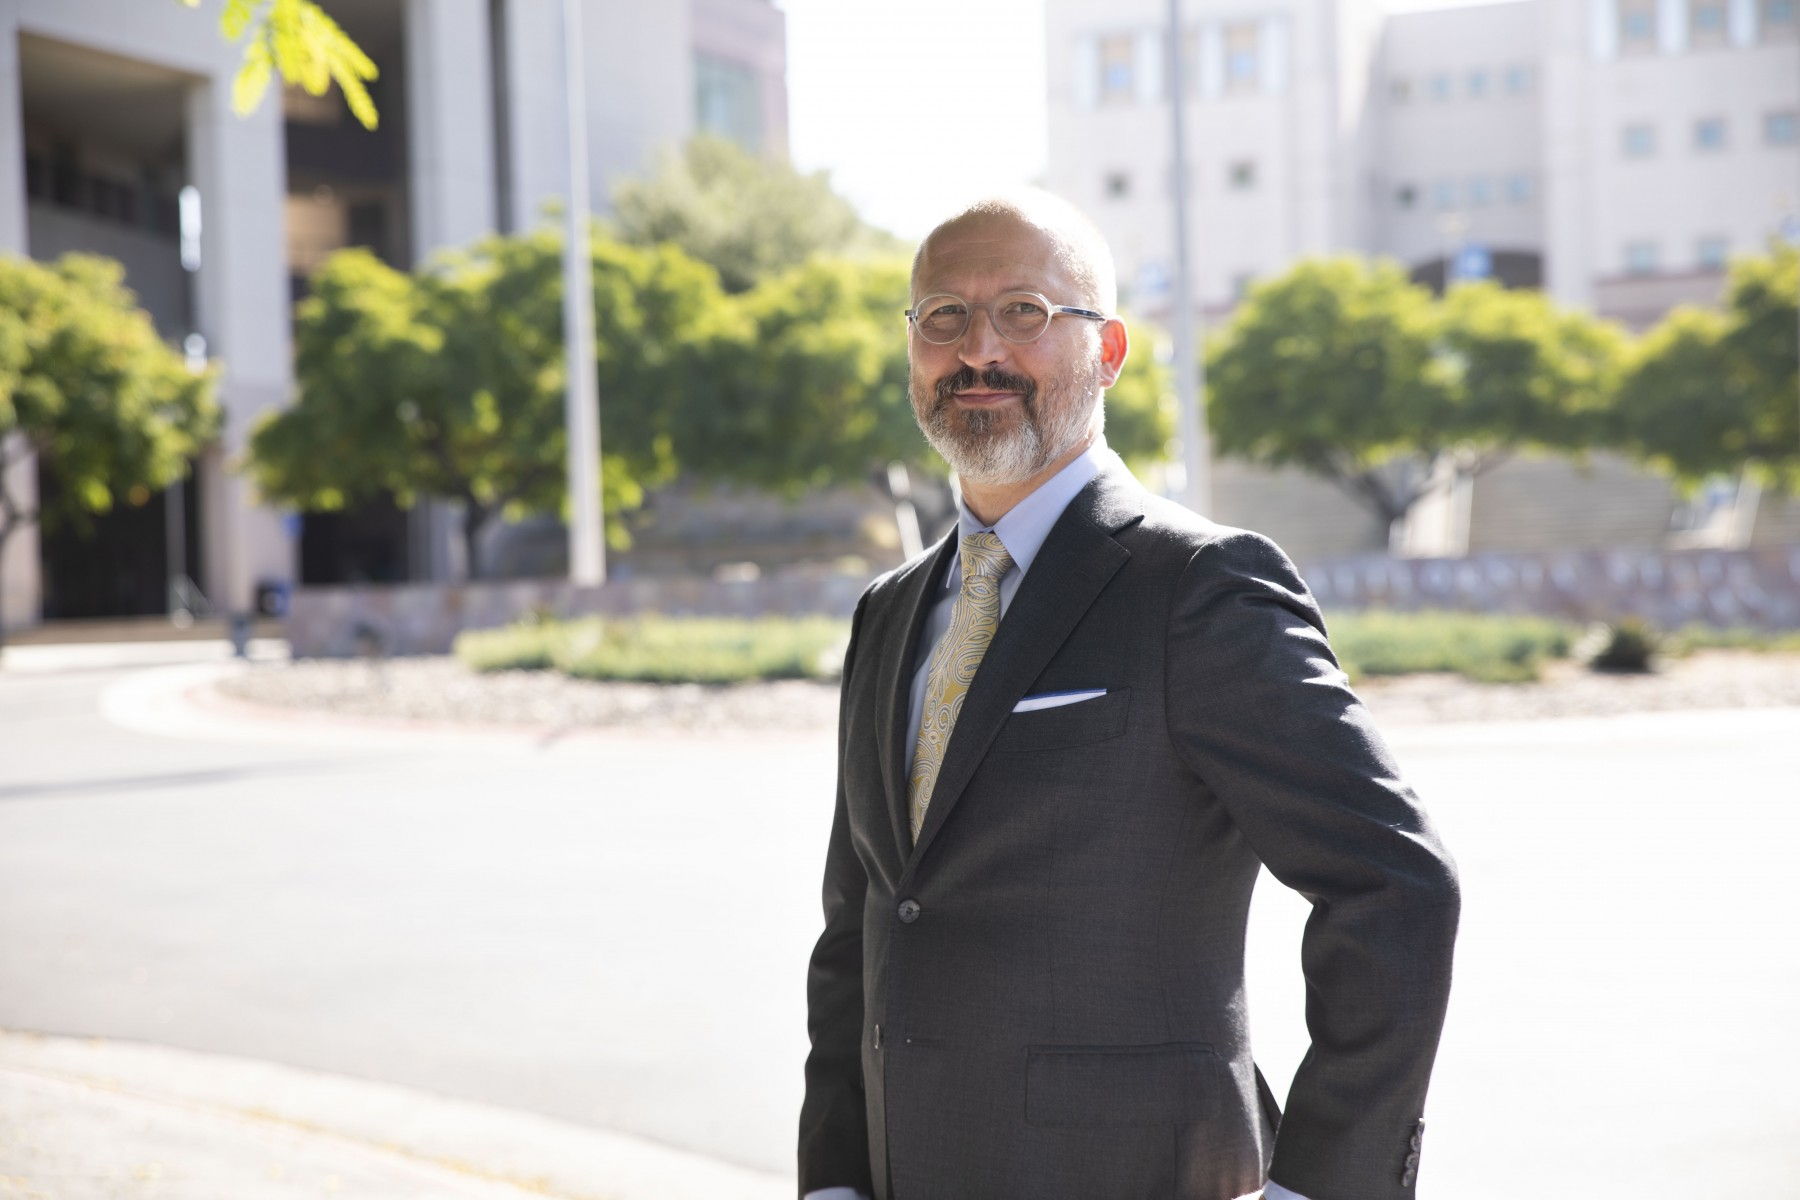 Carl Kemnitz began his tenure as CSUSM's provost and vice president of Academic Affairs on July 1. Photo by Andrew Reed